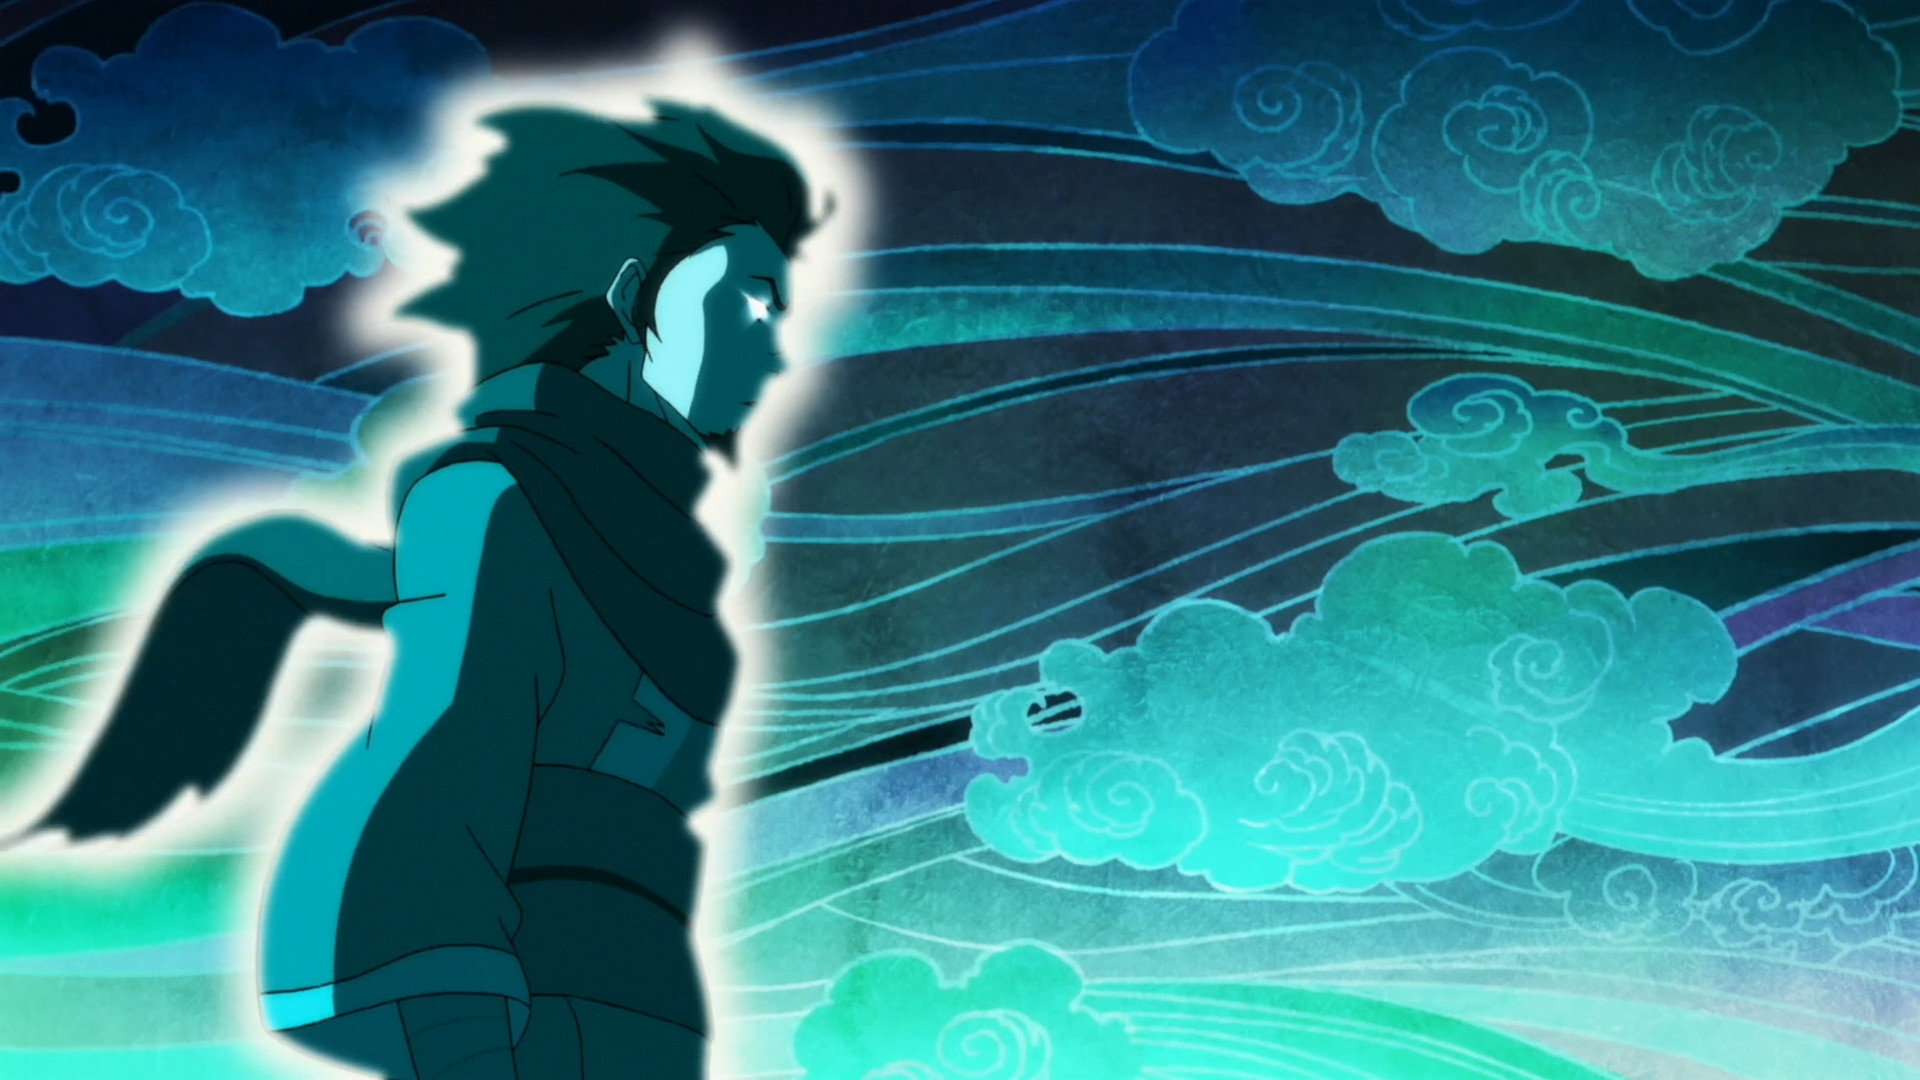 free download avatar: the legend of korra background id:243485 full